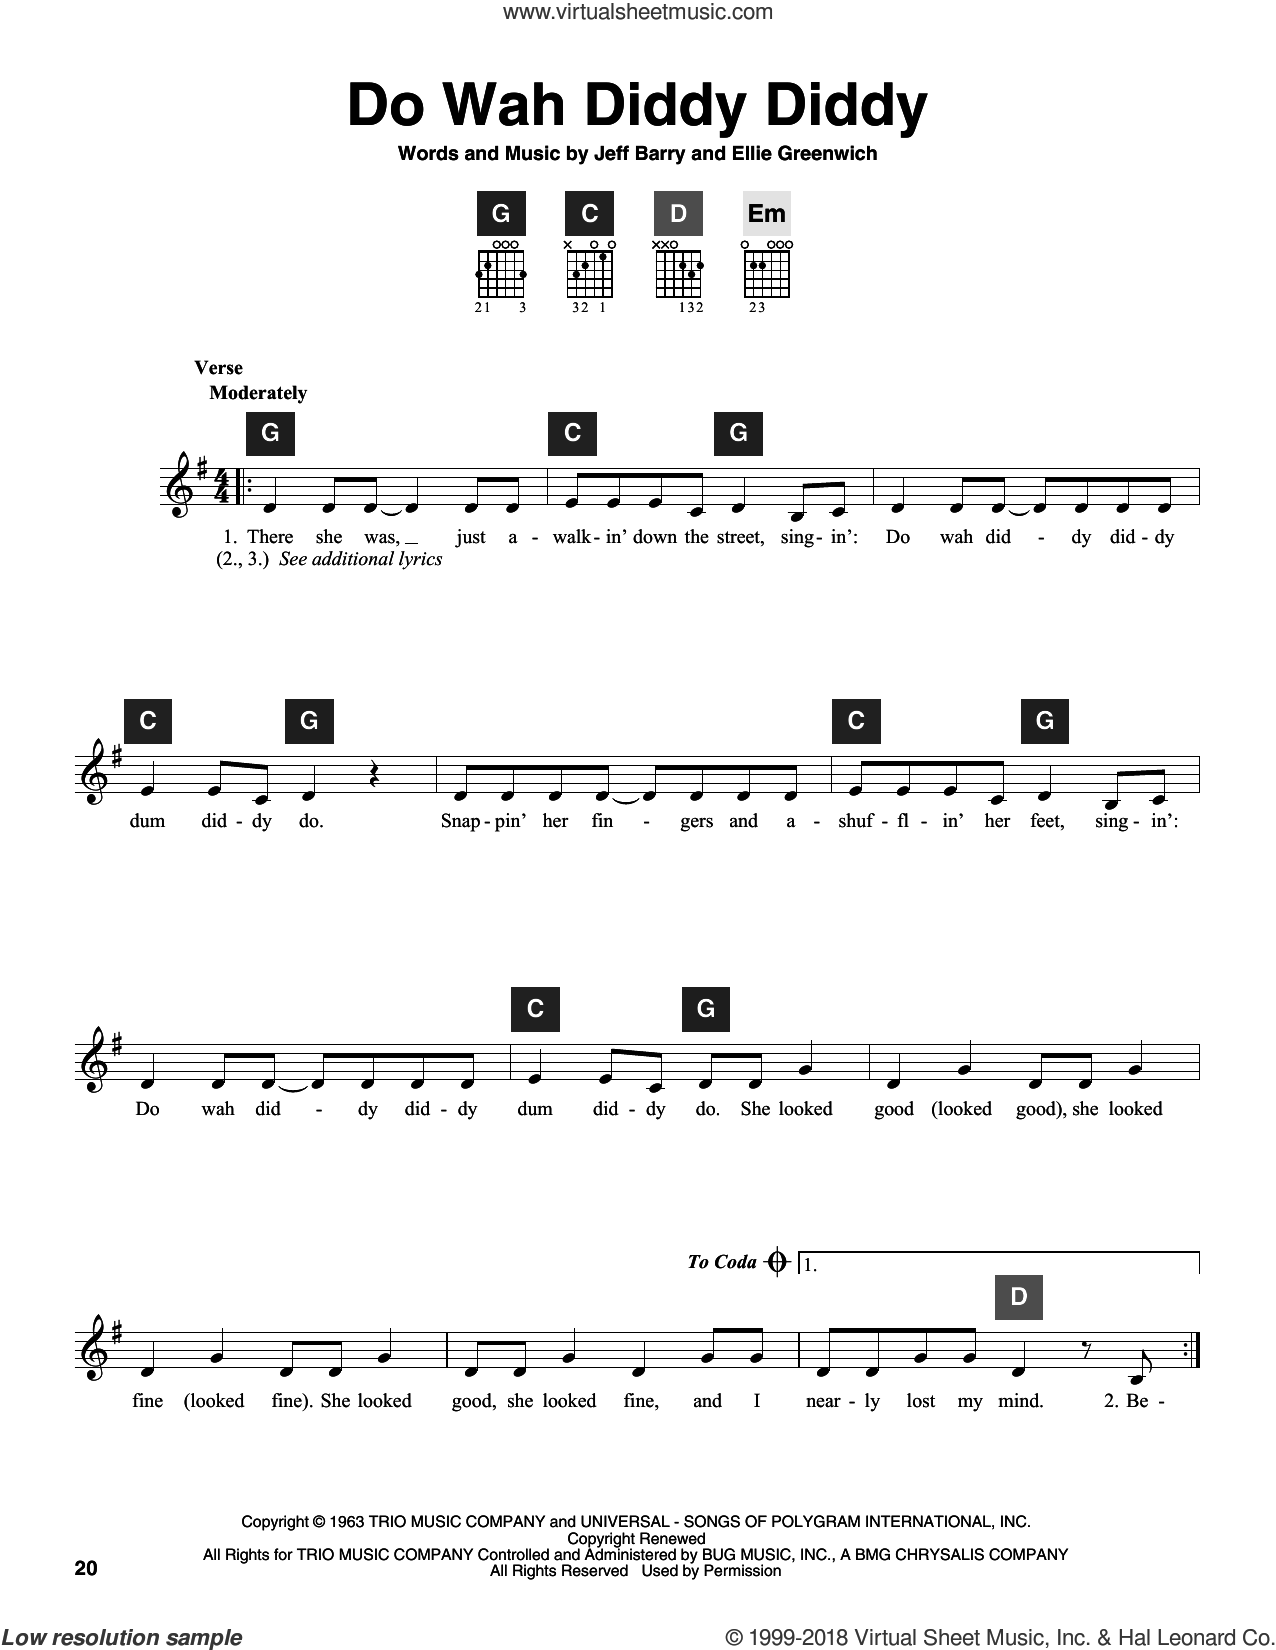 Do Wah Diddy Diddy sheet music for guitar solo (ChordBuddy system) by Manfred Mann, Travis Perry, Ellie Greenwich and Jeff Barry, intermediate guitar (ChordBuddy system). Score Image Preview.